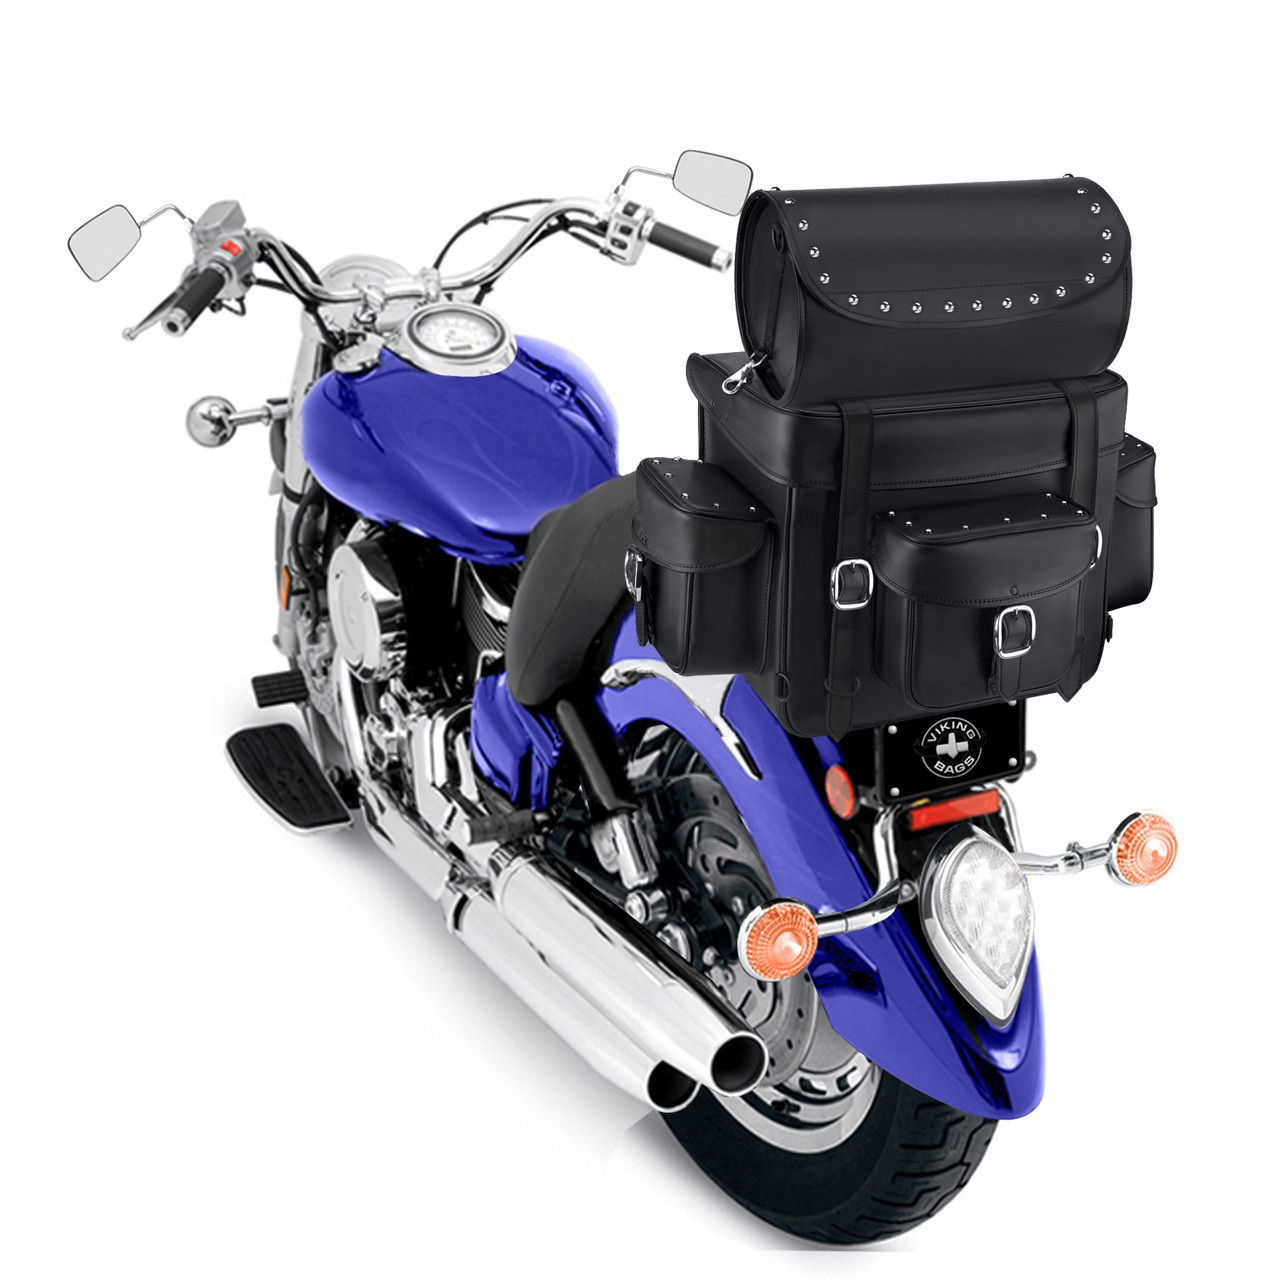 Revival Series Large Studded Sissy Bar Bag On Bike View